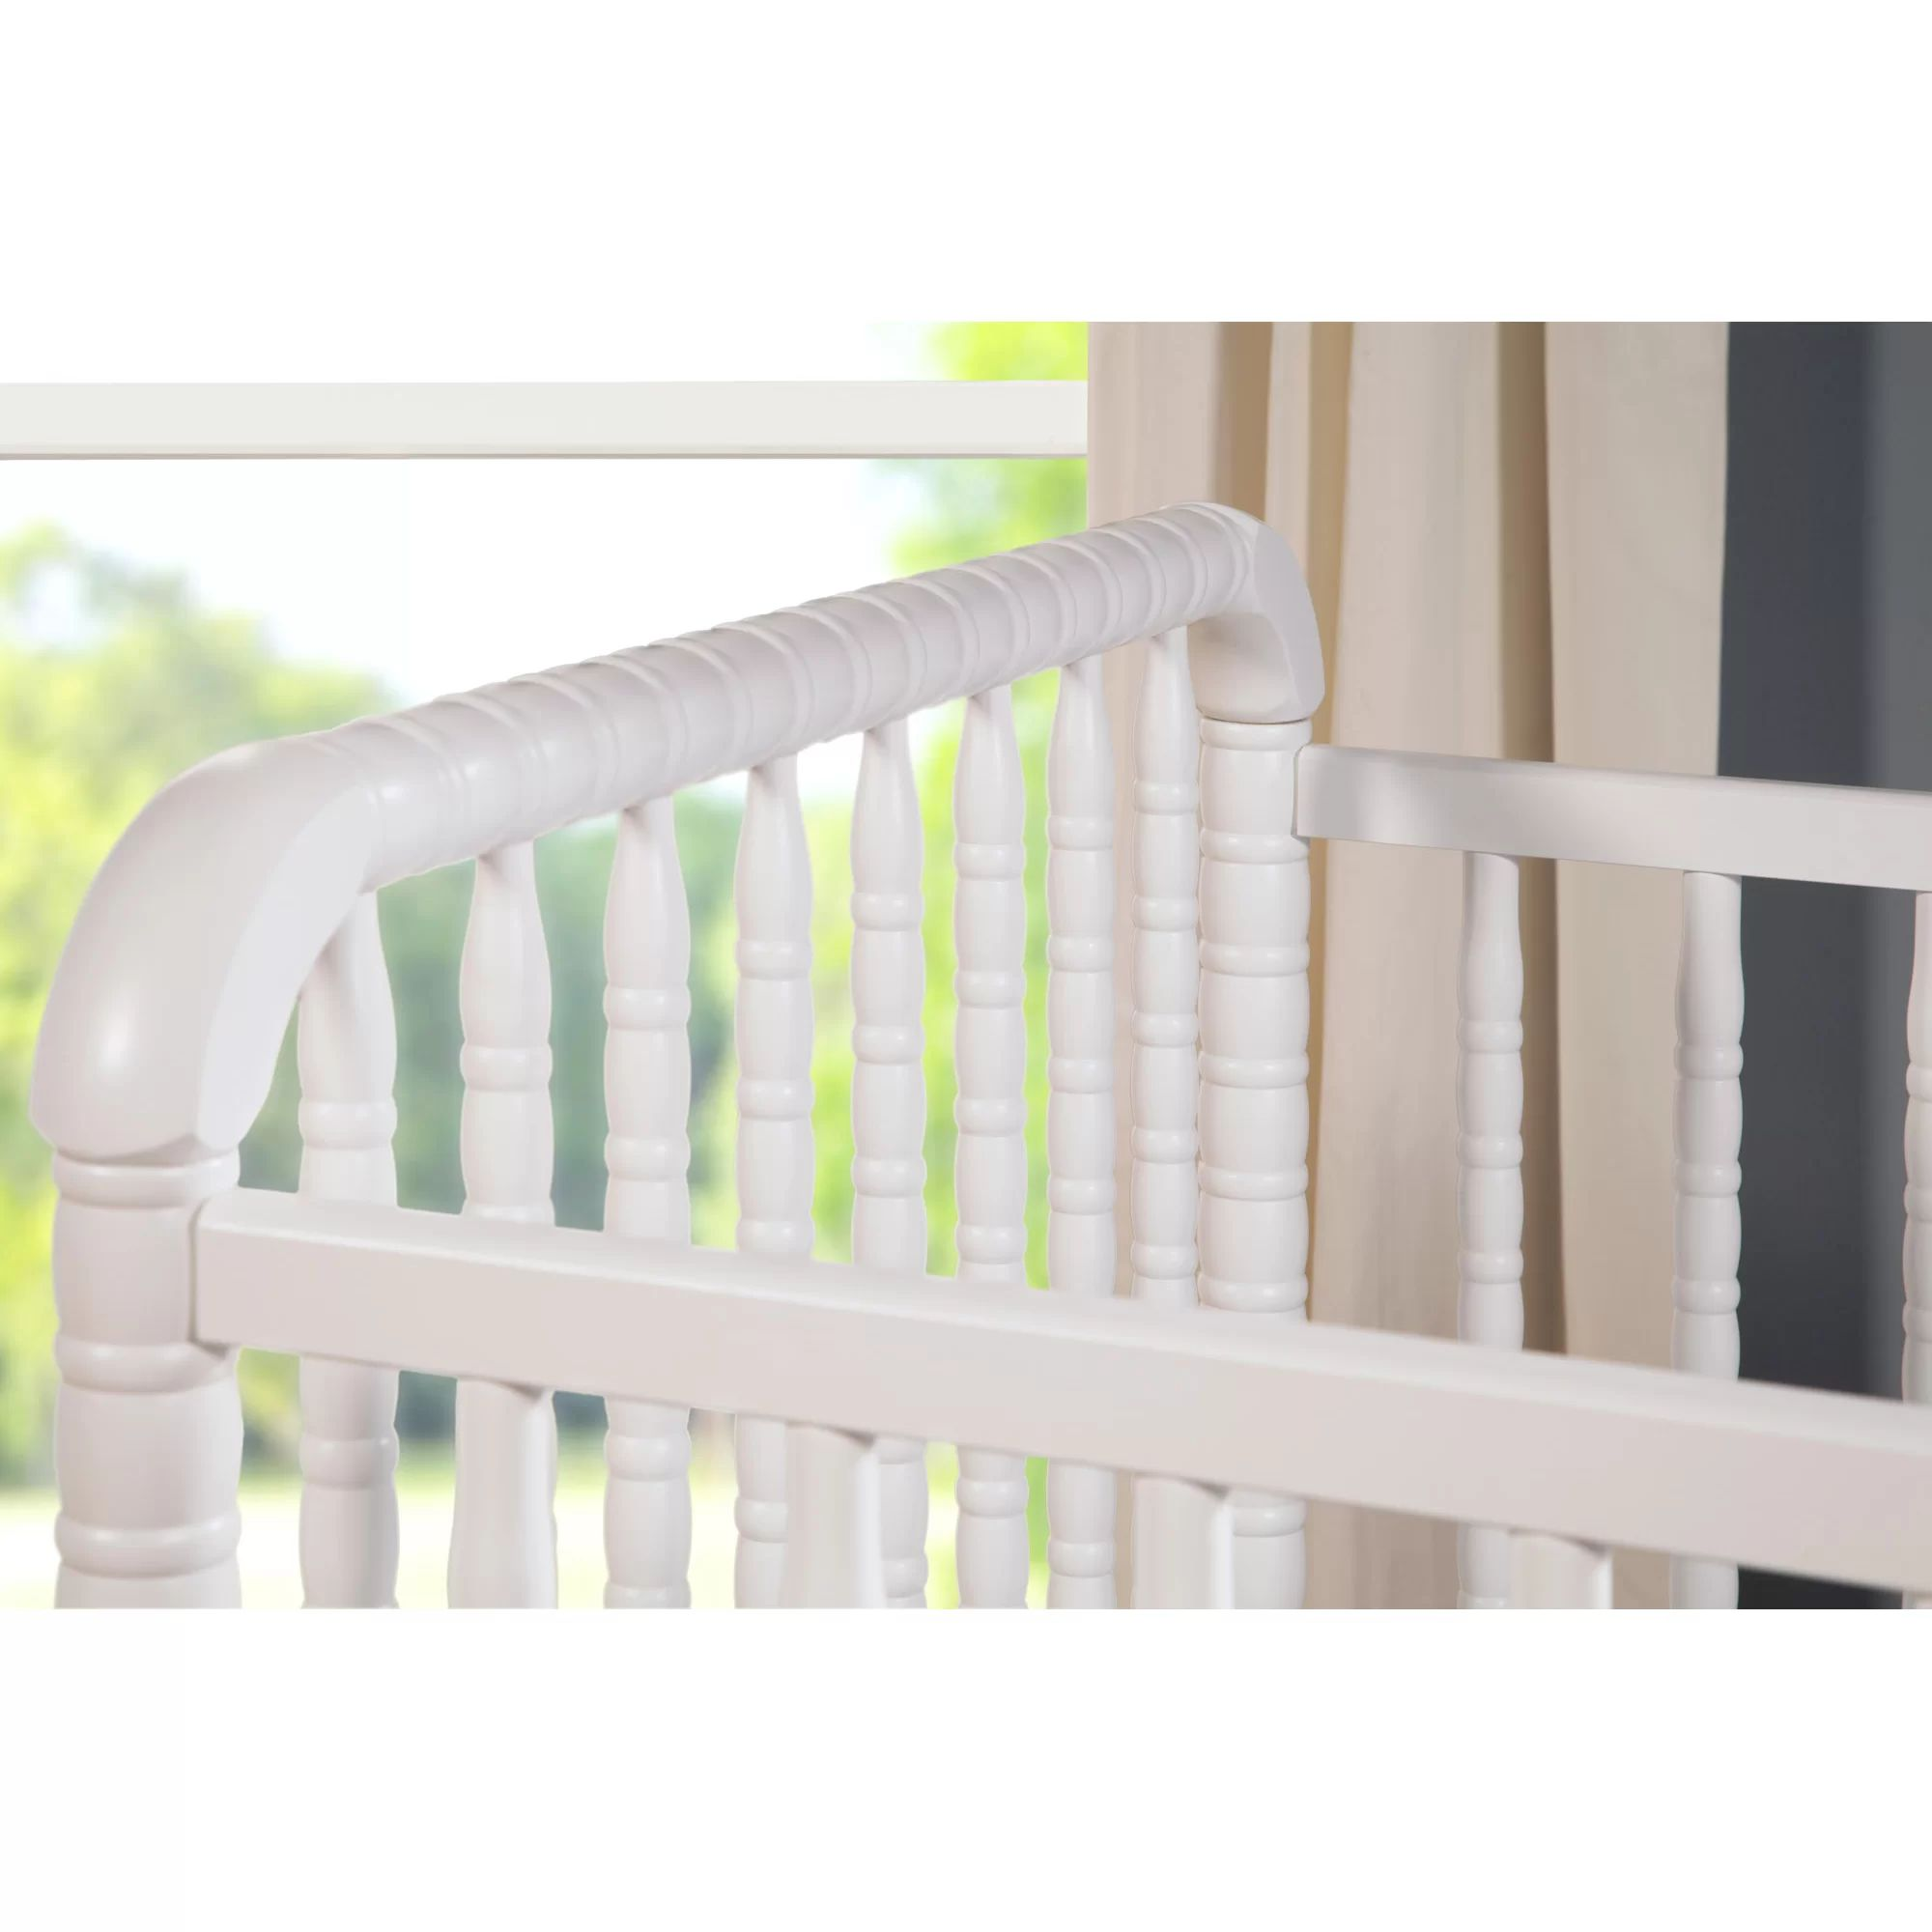 Jenny lind crib for sale canada davinci jenny lind 3 in 1 convertible crib